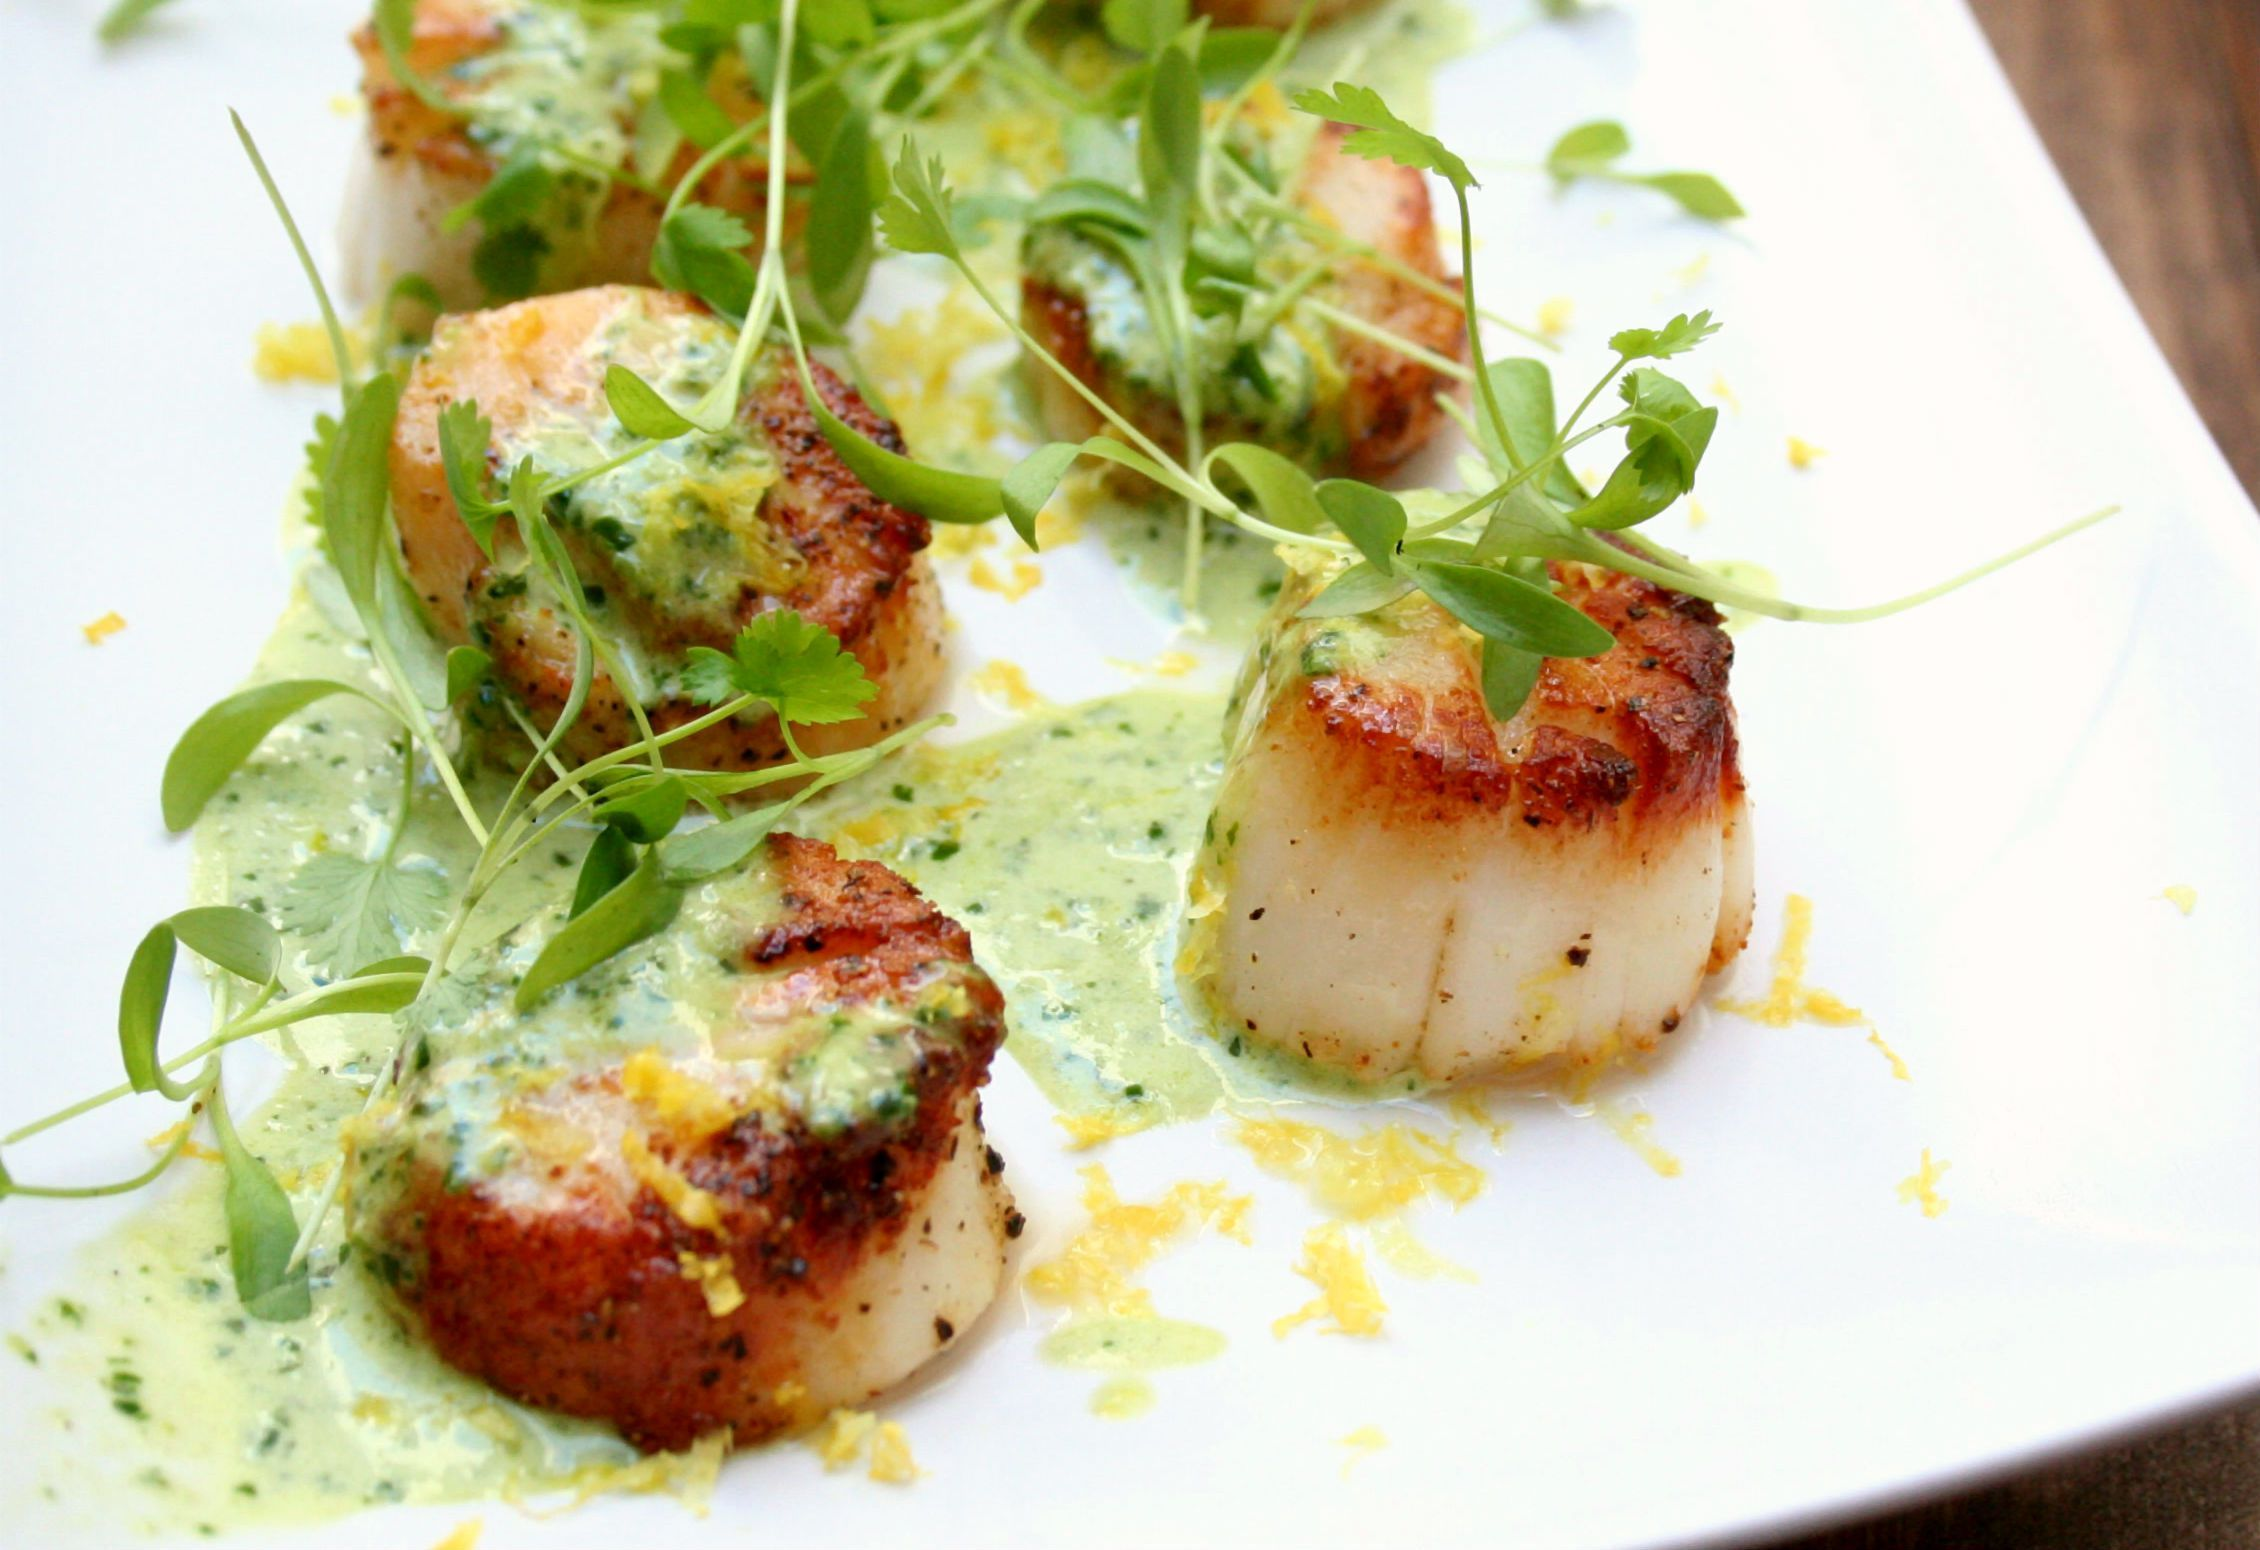 Scallops with Creamy Pesto